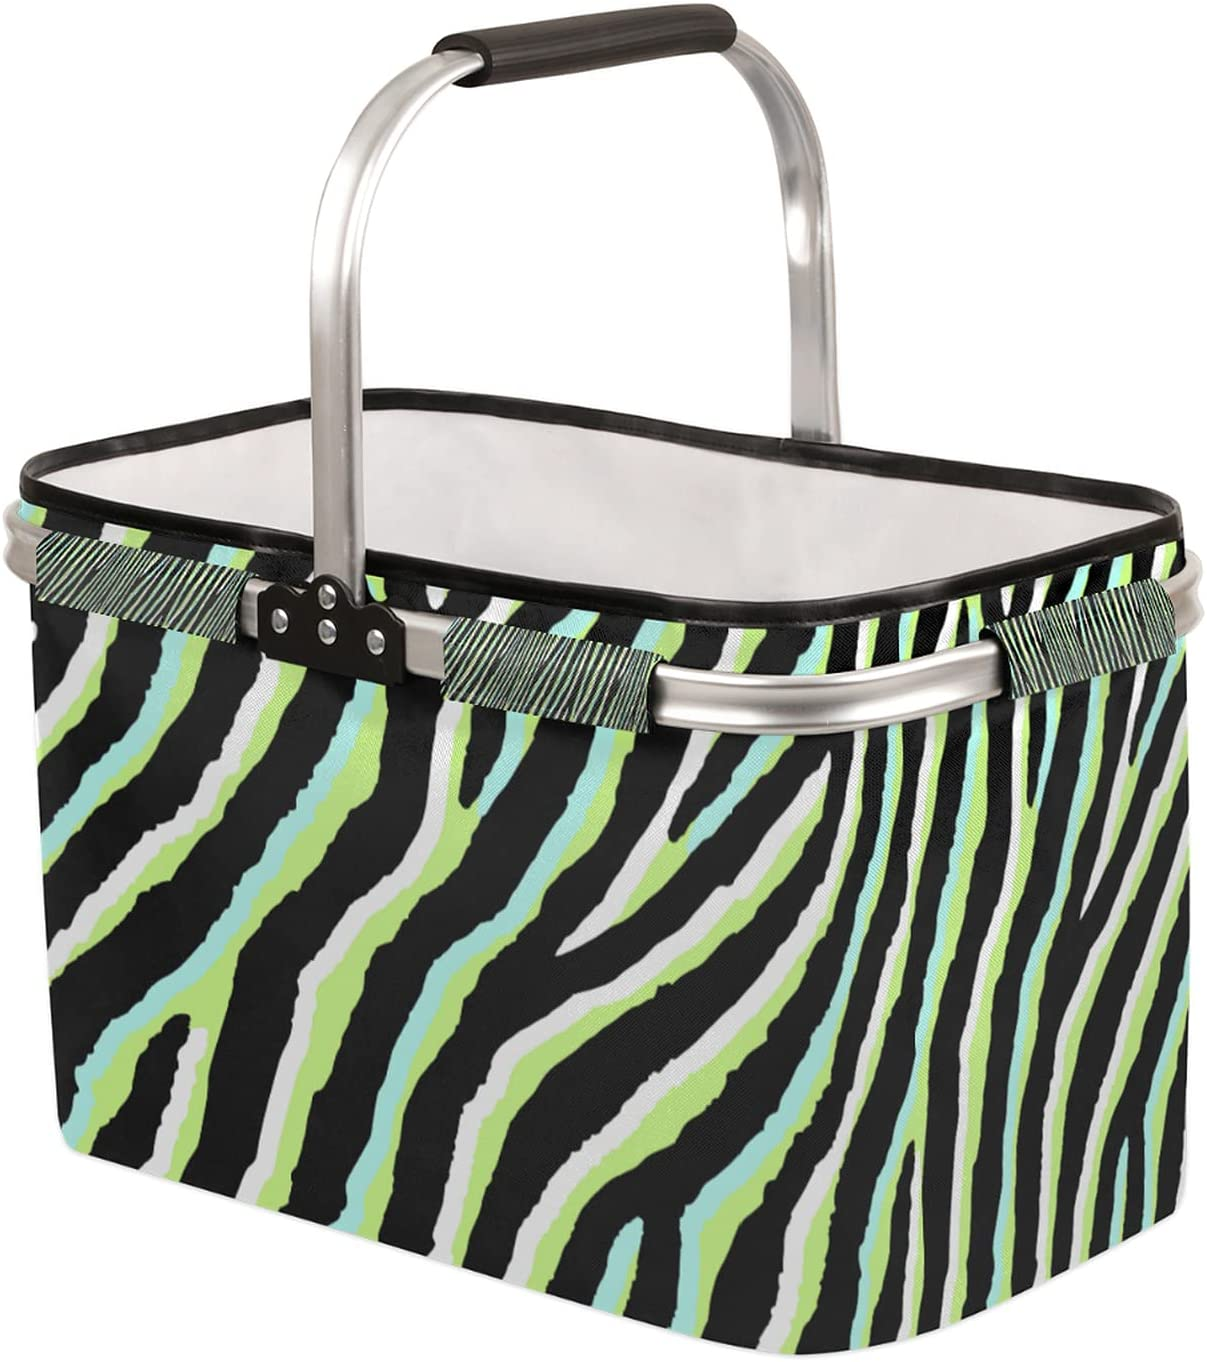 Collapsible Market Basket with Strong Free Large-scale sale shipping Frame Handle Aluminum Soft